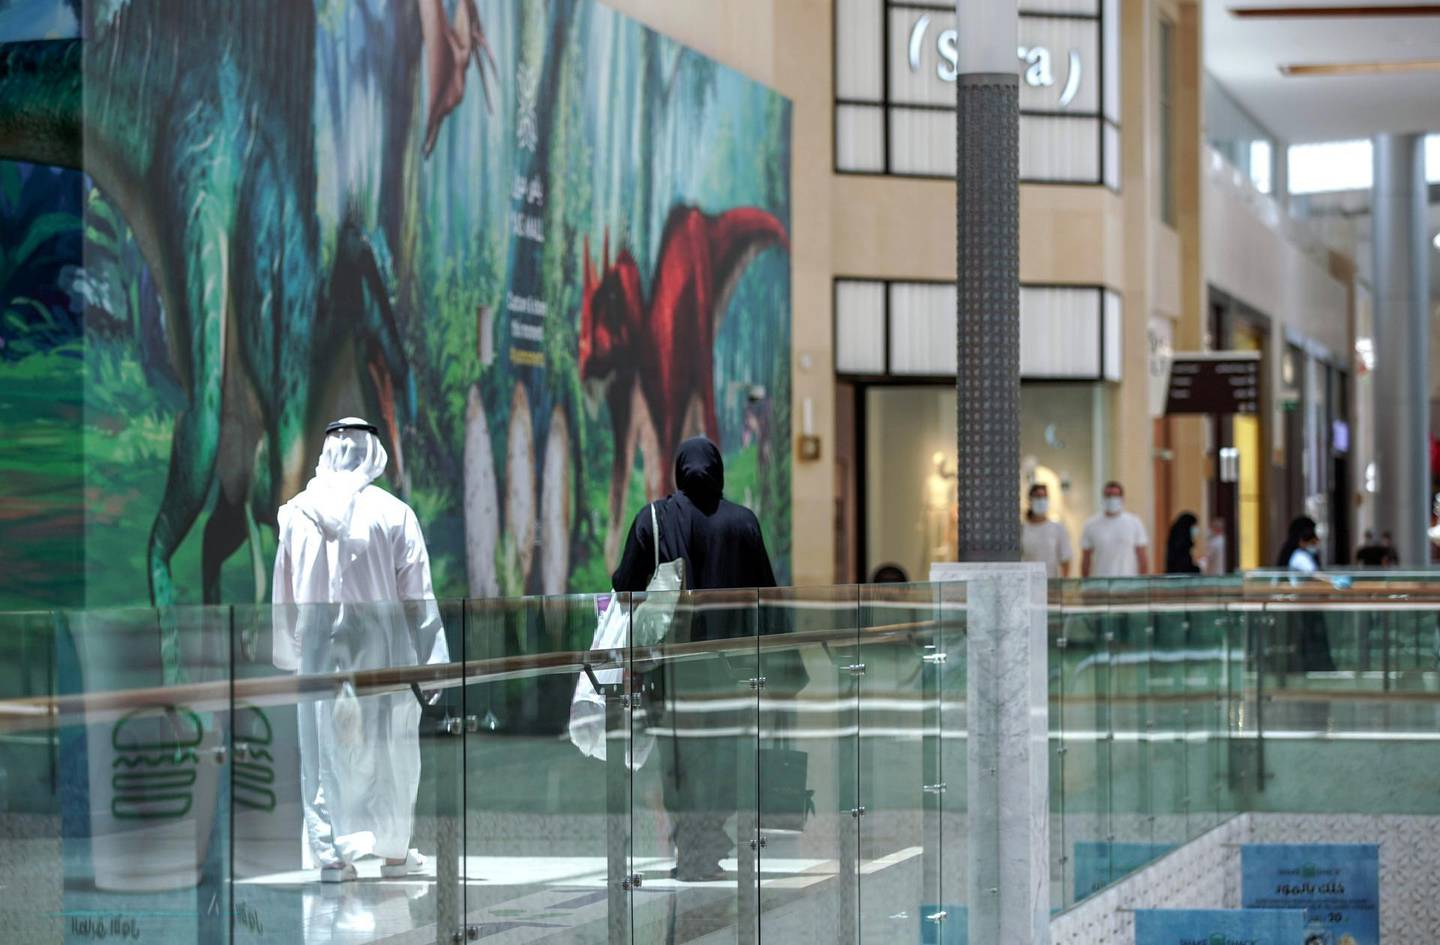 Abu Dhabi, United Arab Emirates, May 9, 2020.  Yas Mall, Abu Dhabi will be open from noon to 9pm. Supermarkets and pharmacies will be open from 9am to midnight.  Mall shoppers during the Coronavirus pandemic.Victor Besa/The NationalSection:  NAReporter: